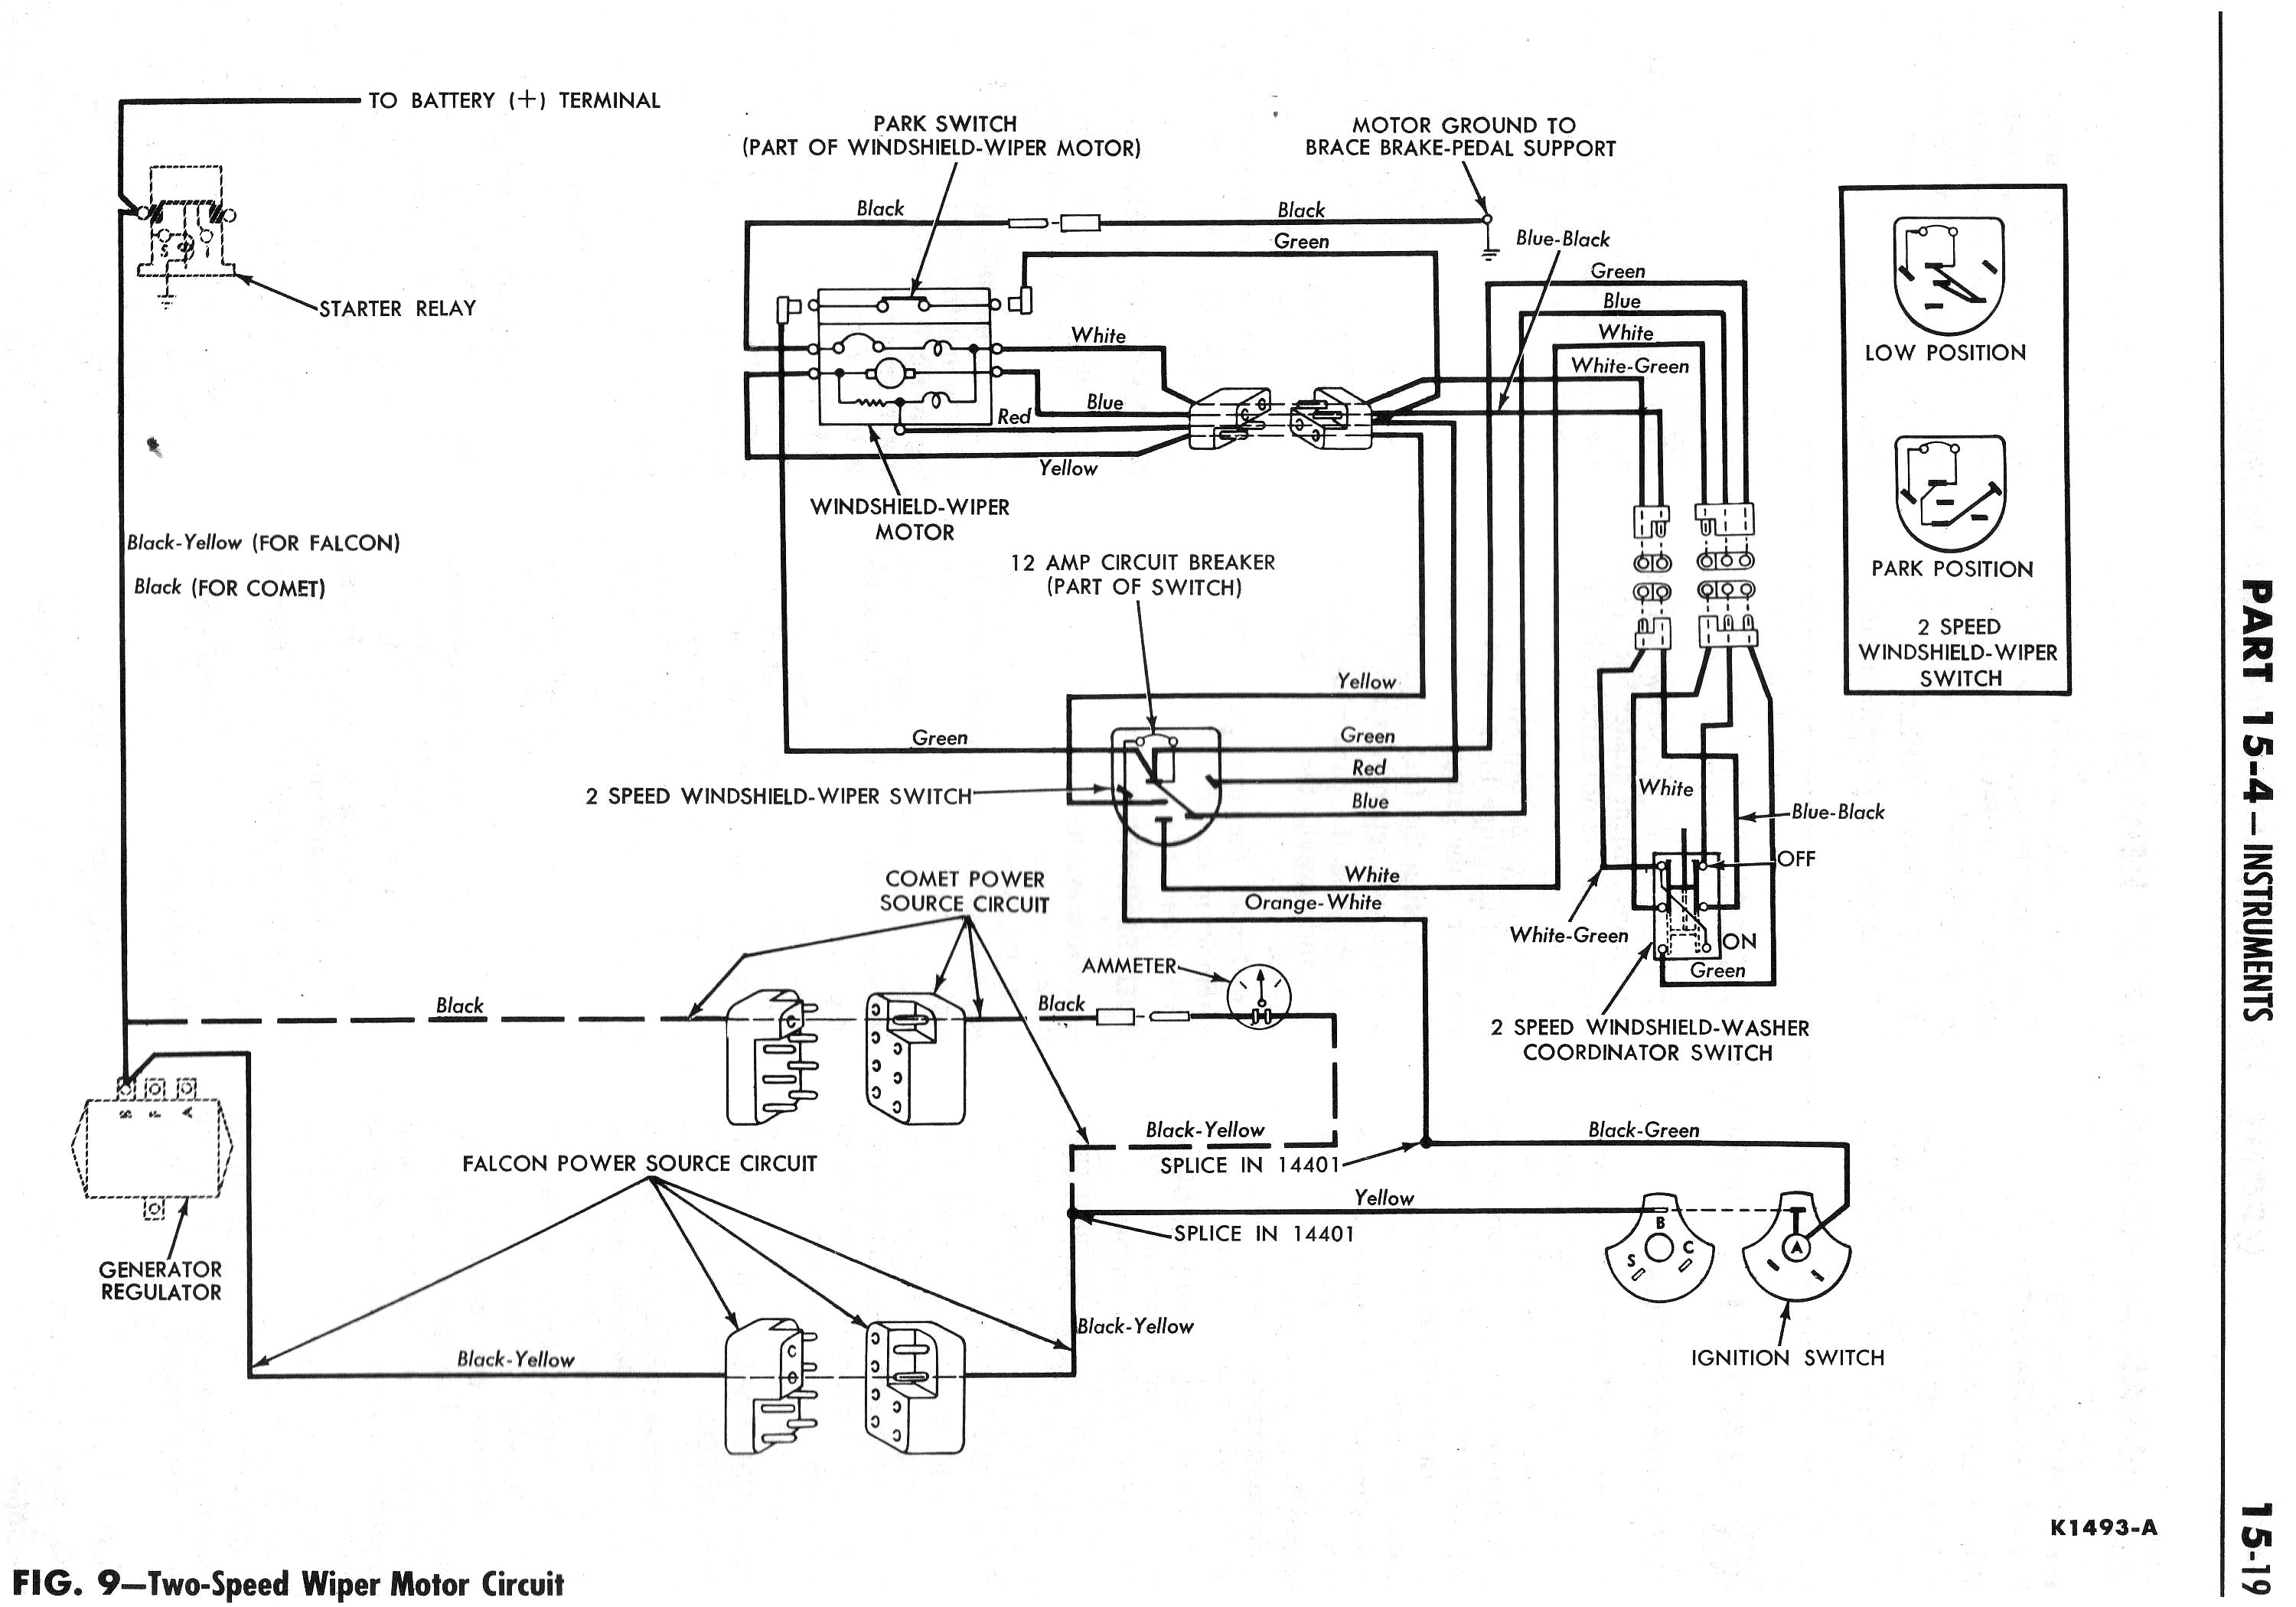 1980 lincoln town car wiring diagram schematic | add wiring diagrams route  arte limpida